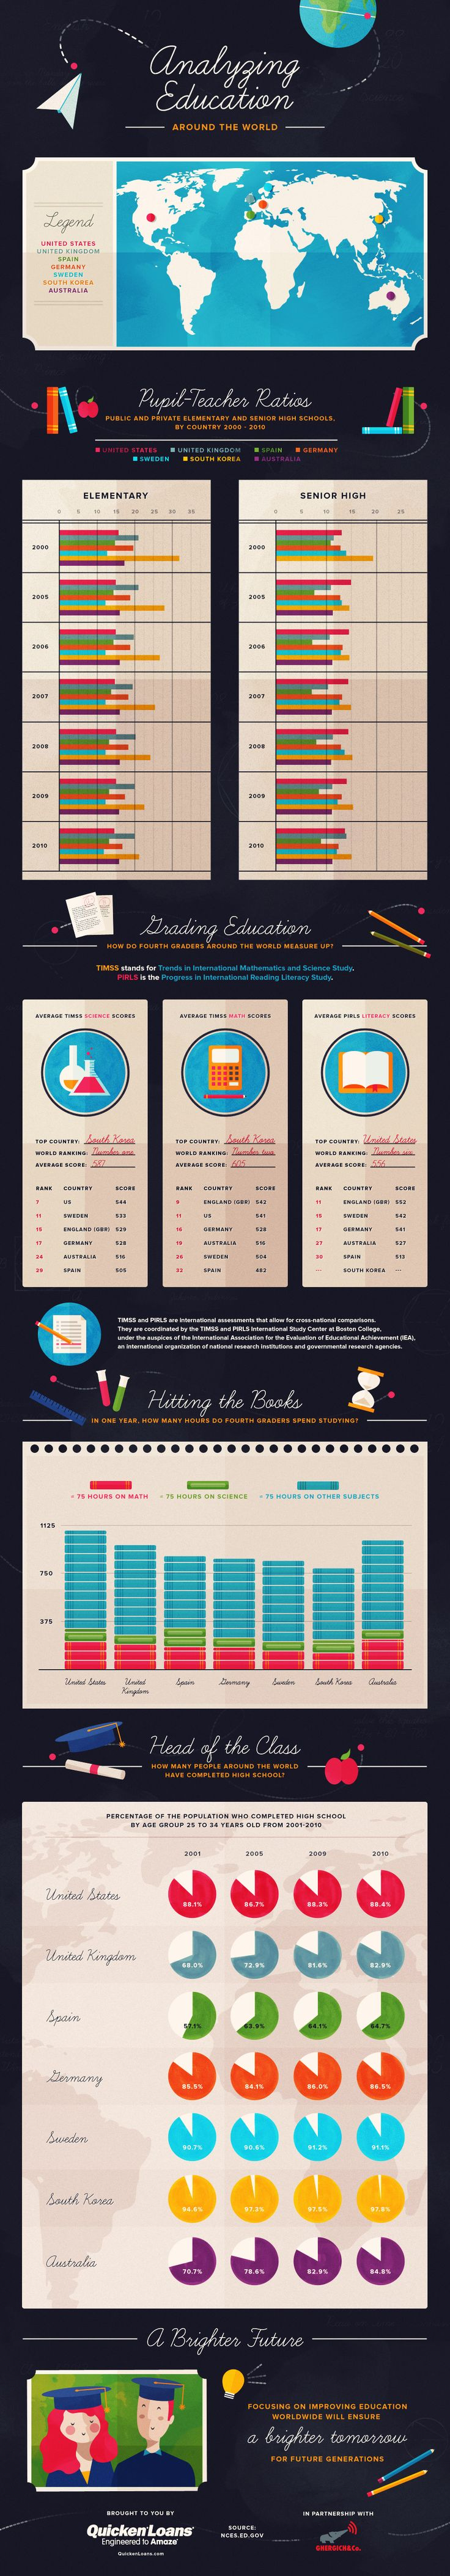 19 best education technology images on pinterest educational analyzing education around the world infographic fandeluxe Choice Image